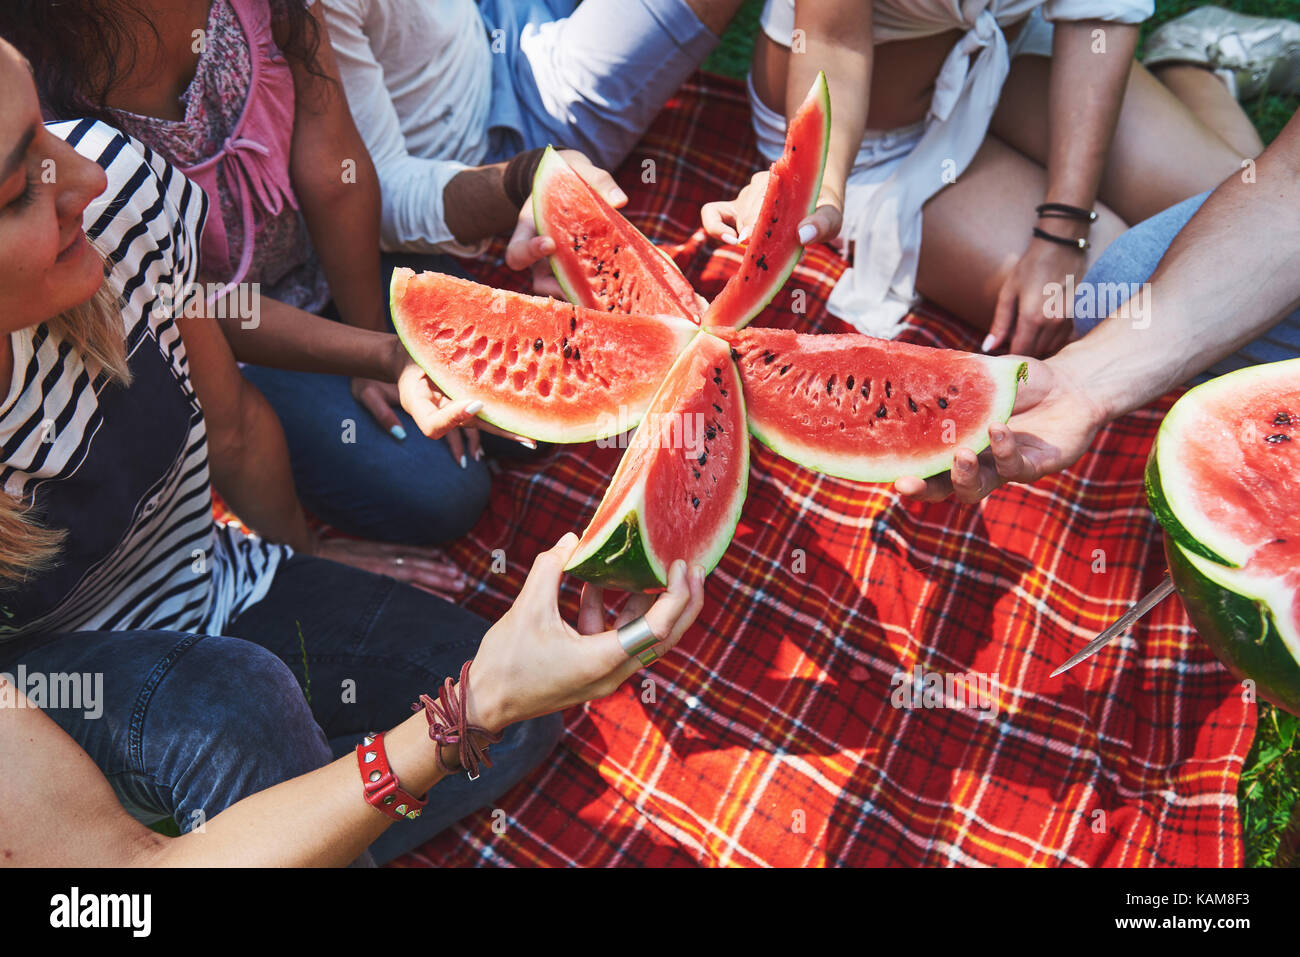 Cheerful friends enjoying watermelon on pique-nique sur journée ensoleillée Photo Stock